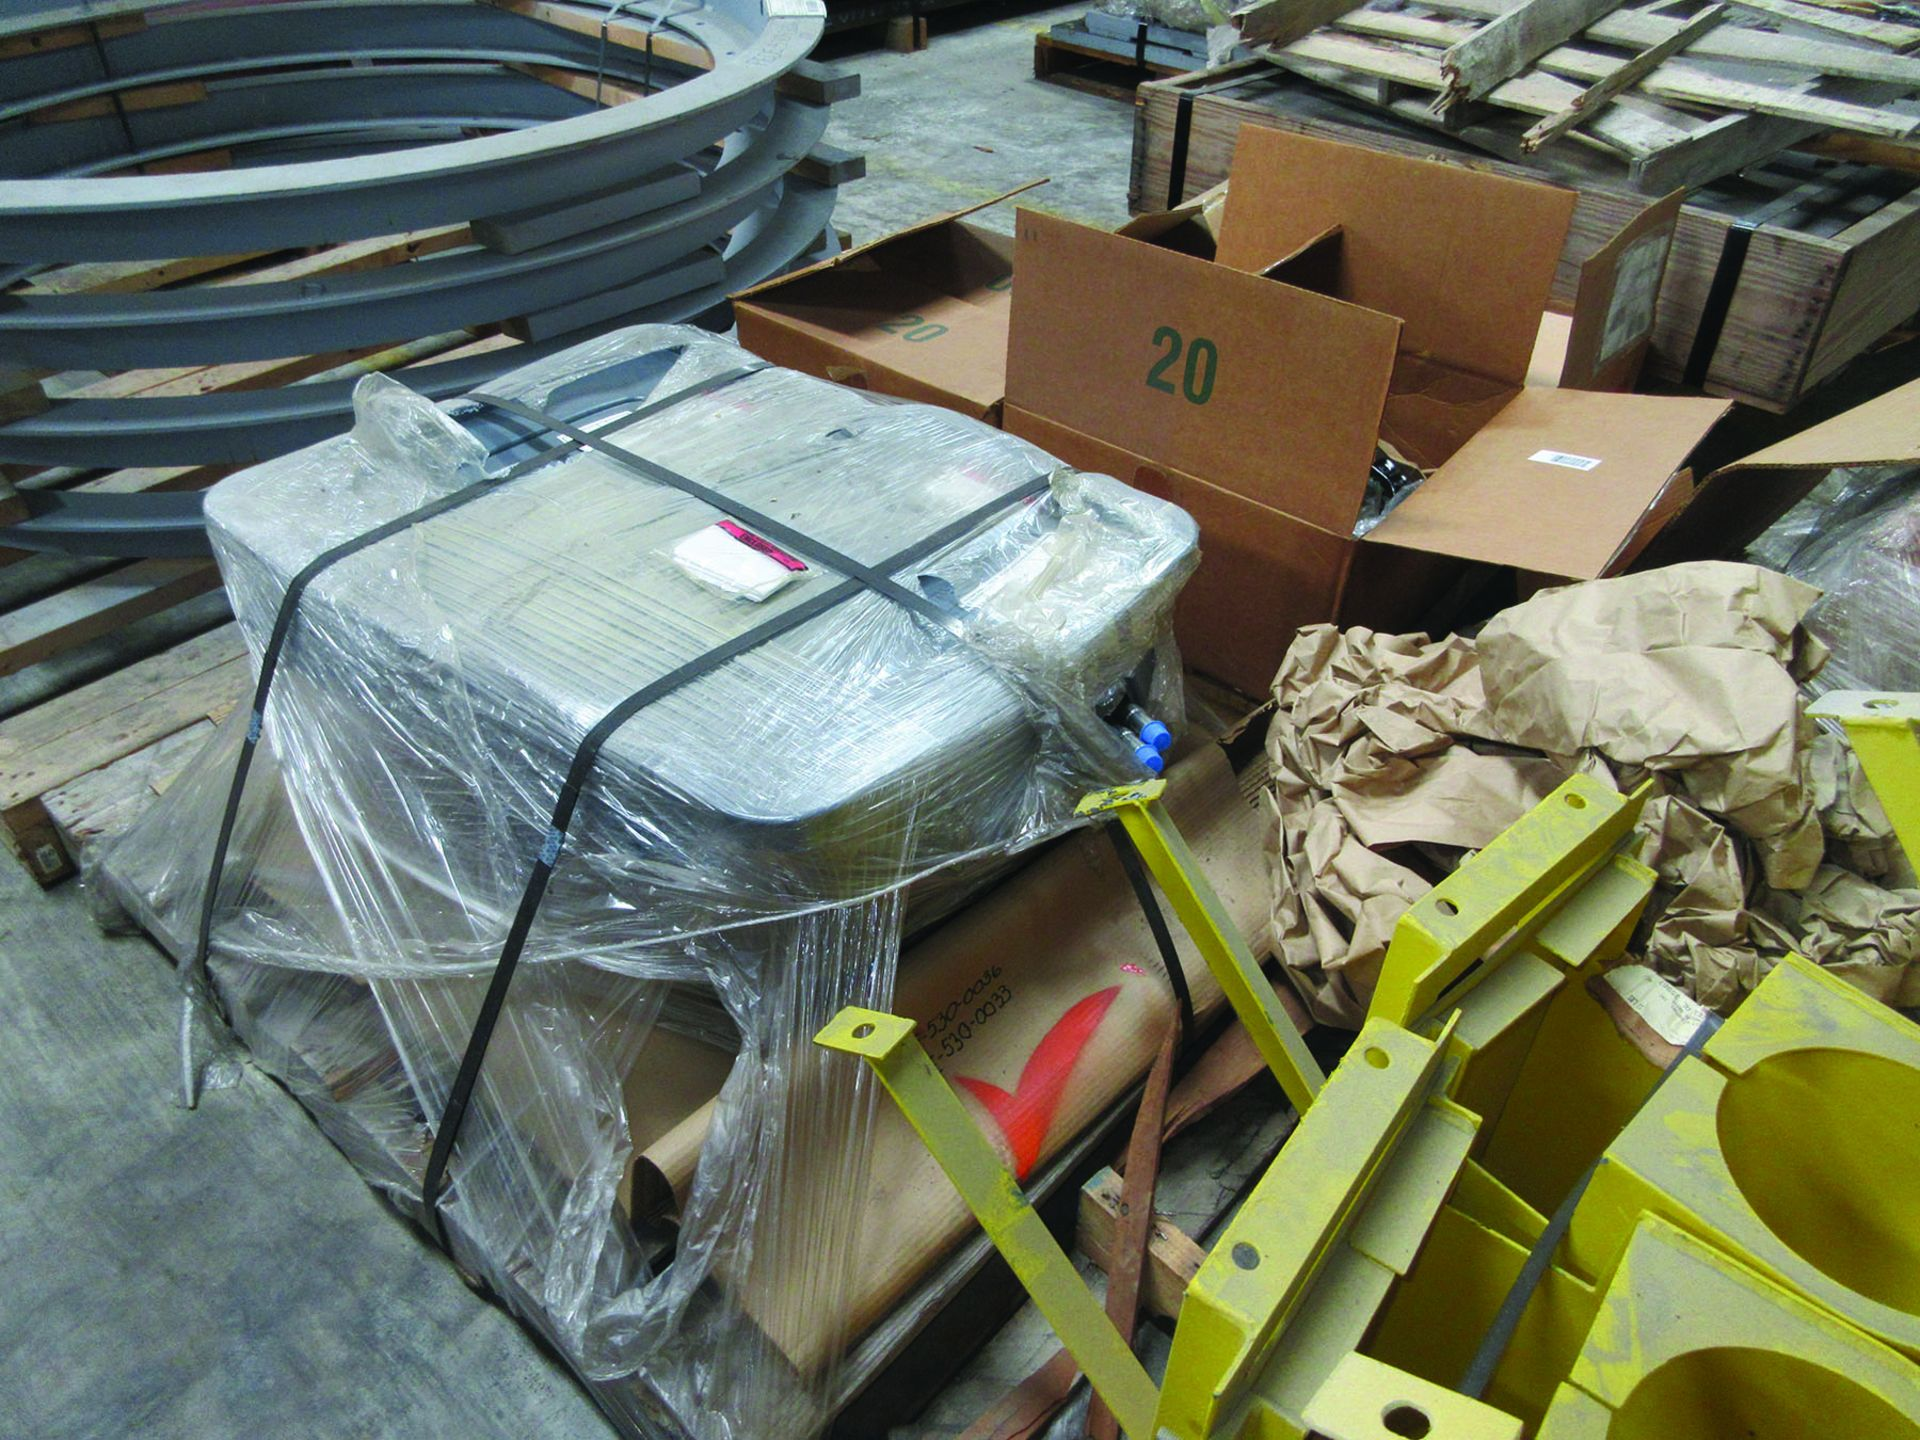 LOT OF ASSORTED PARTS: BARSETS, SHAFT COUPLINGS, COUPLING GUARDS, AND MORE, GRID A7 - Image 5 of 16